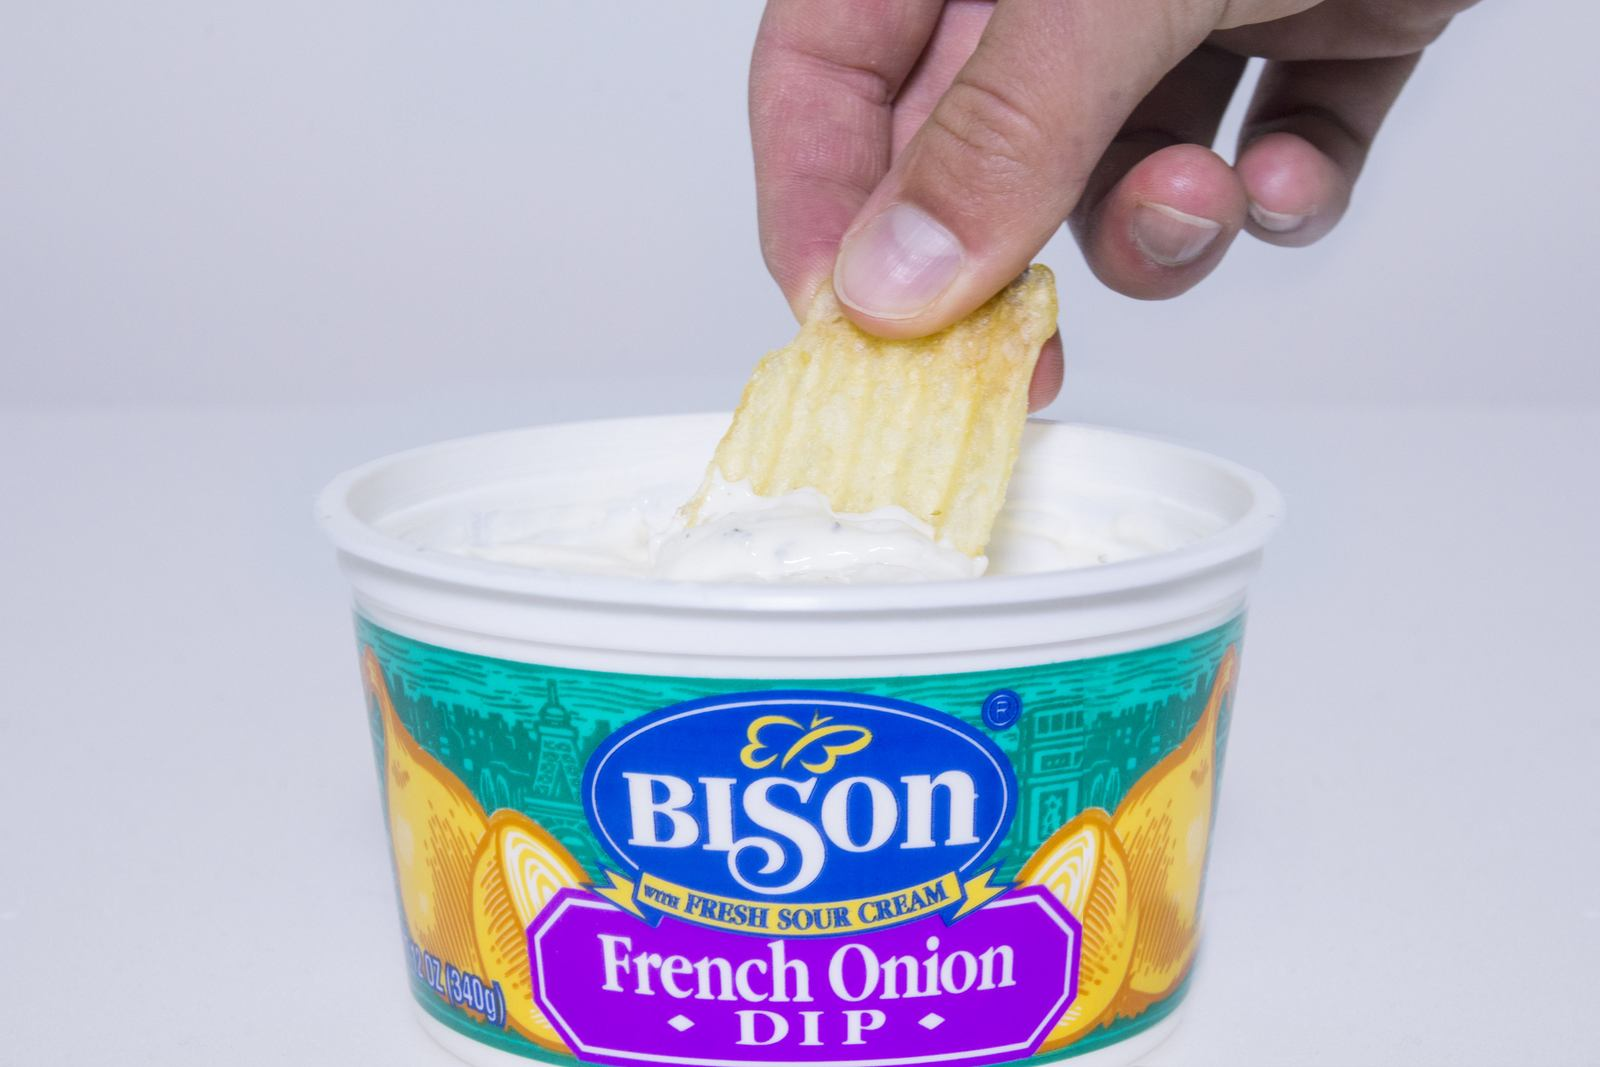 Bison French Onion Dip has been a favorite for generations of Western New Yorkers. (Photo: Upstate Niagara Cooperative)